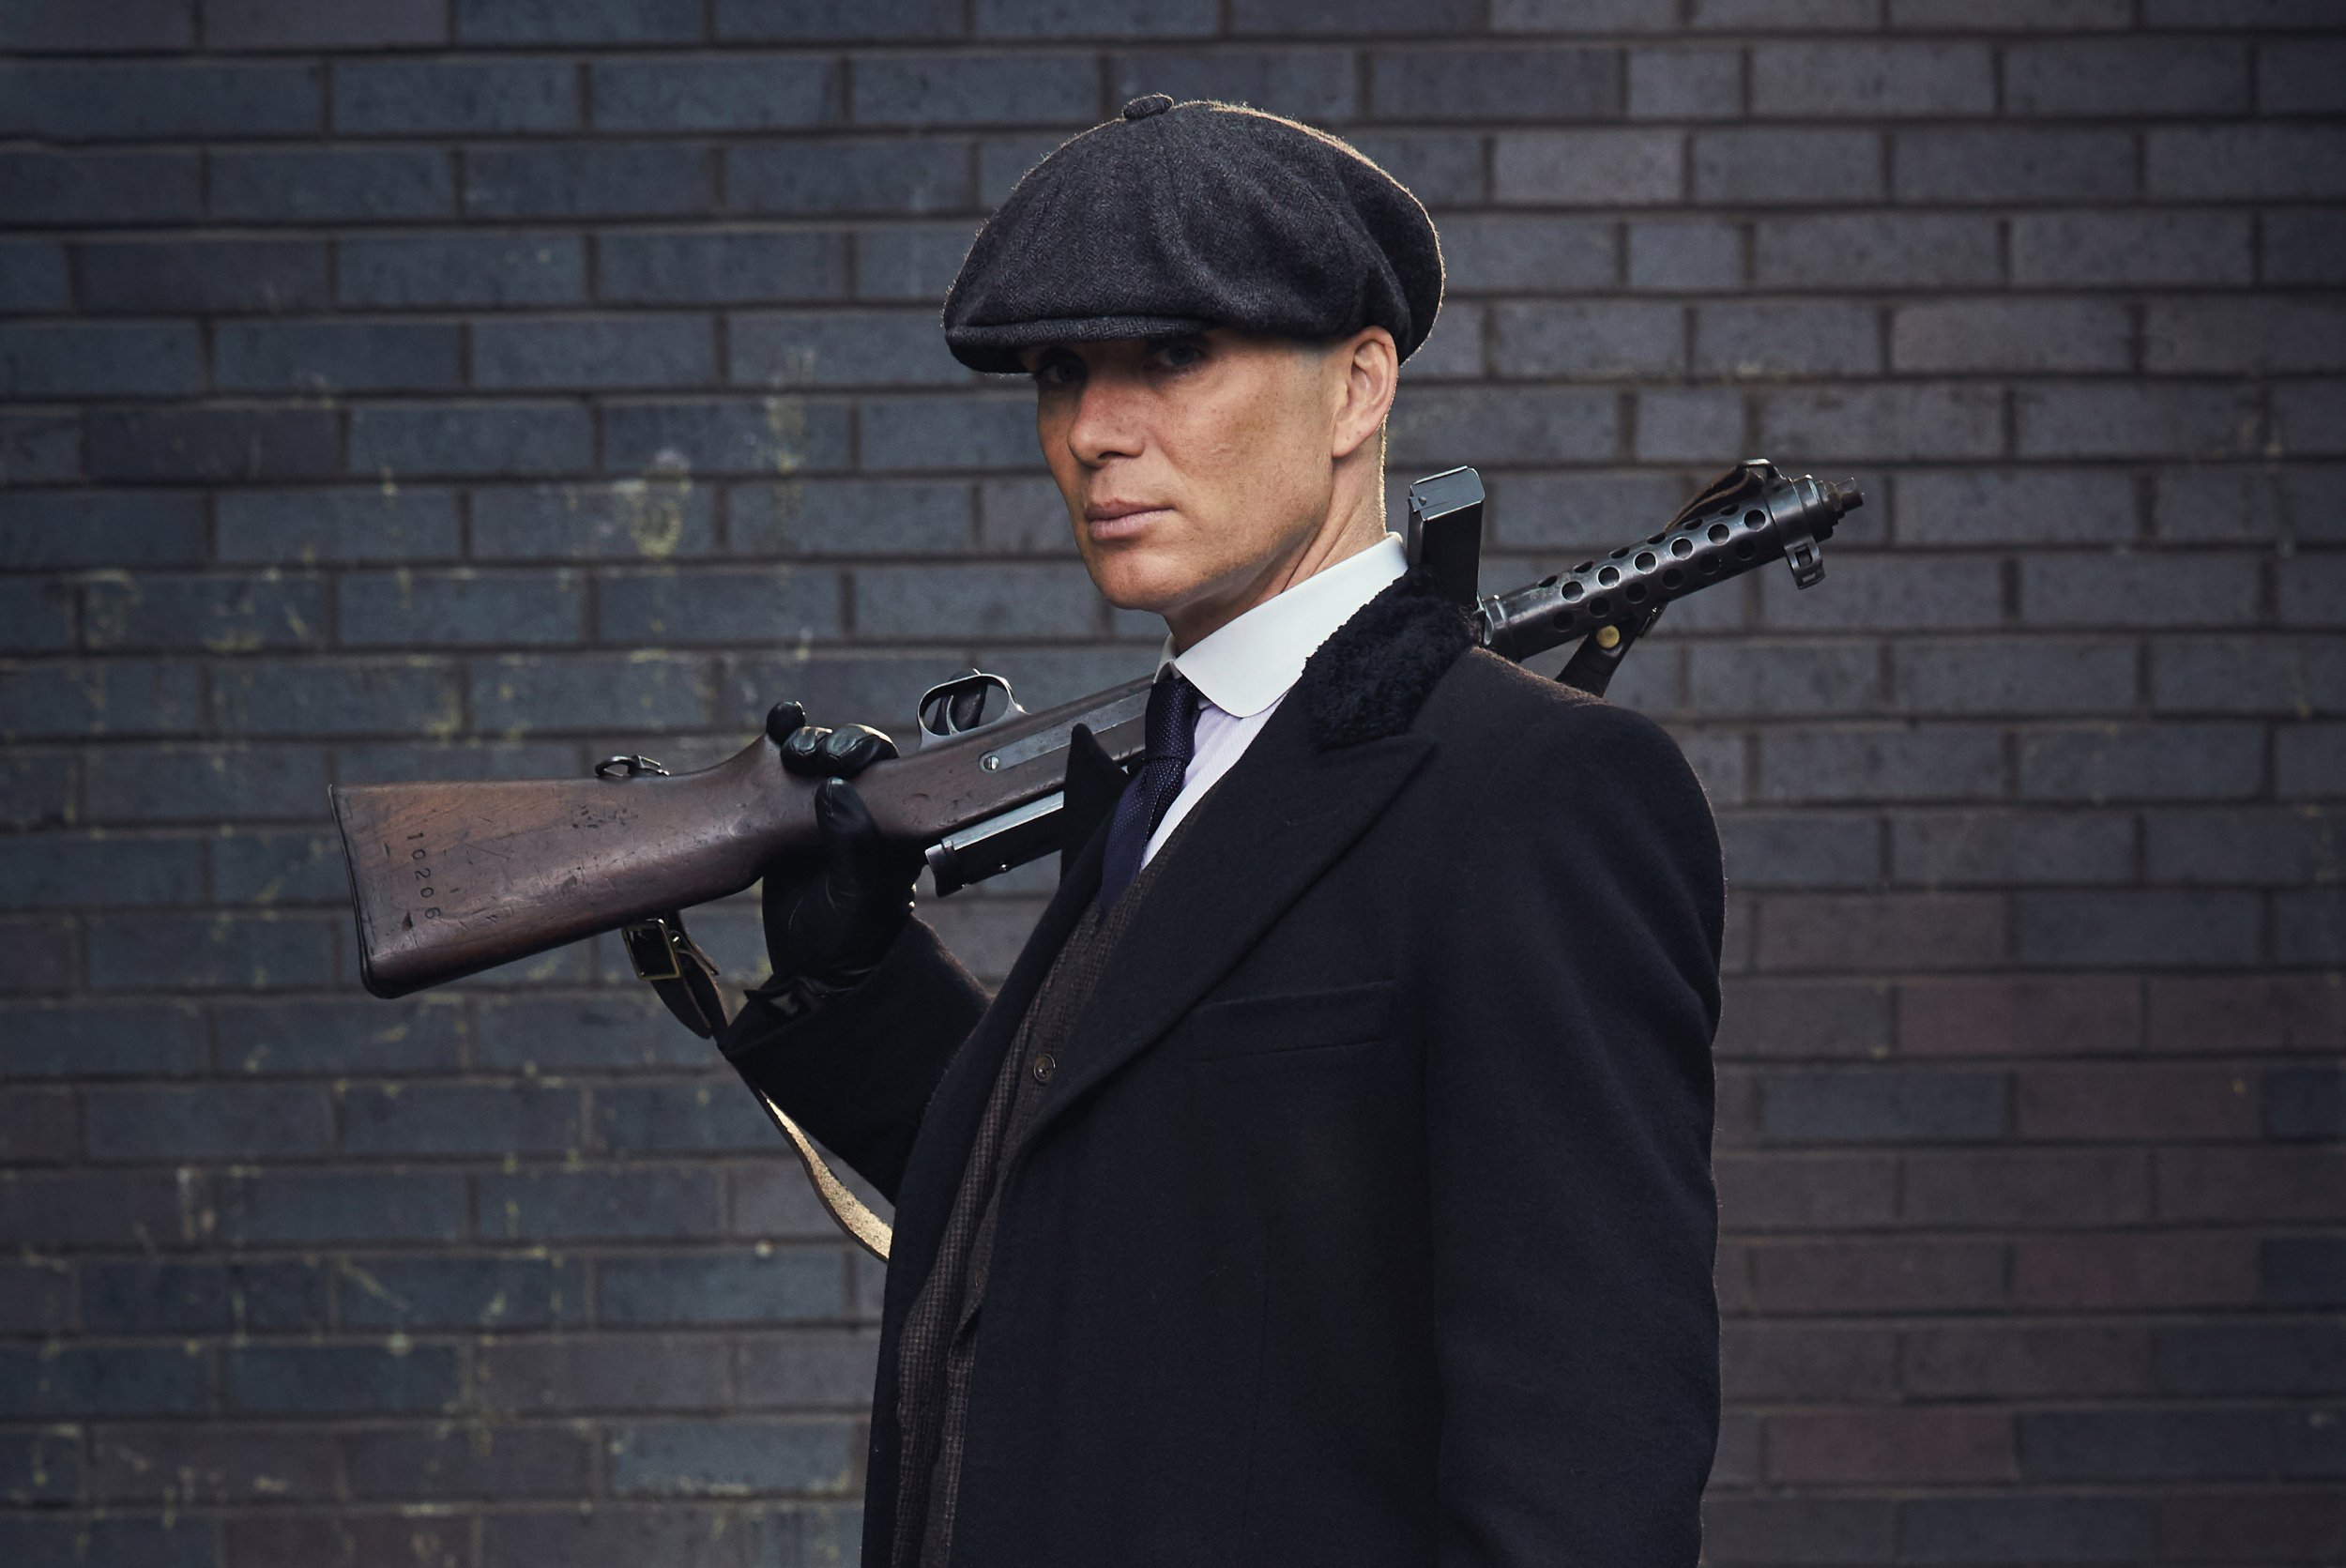 Cillian Murphy says he's 'curious' about a possible Peaky Blinders movie